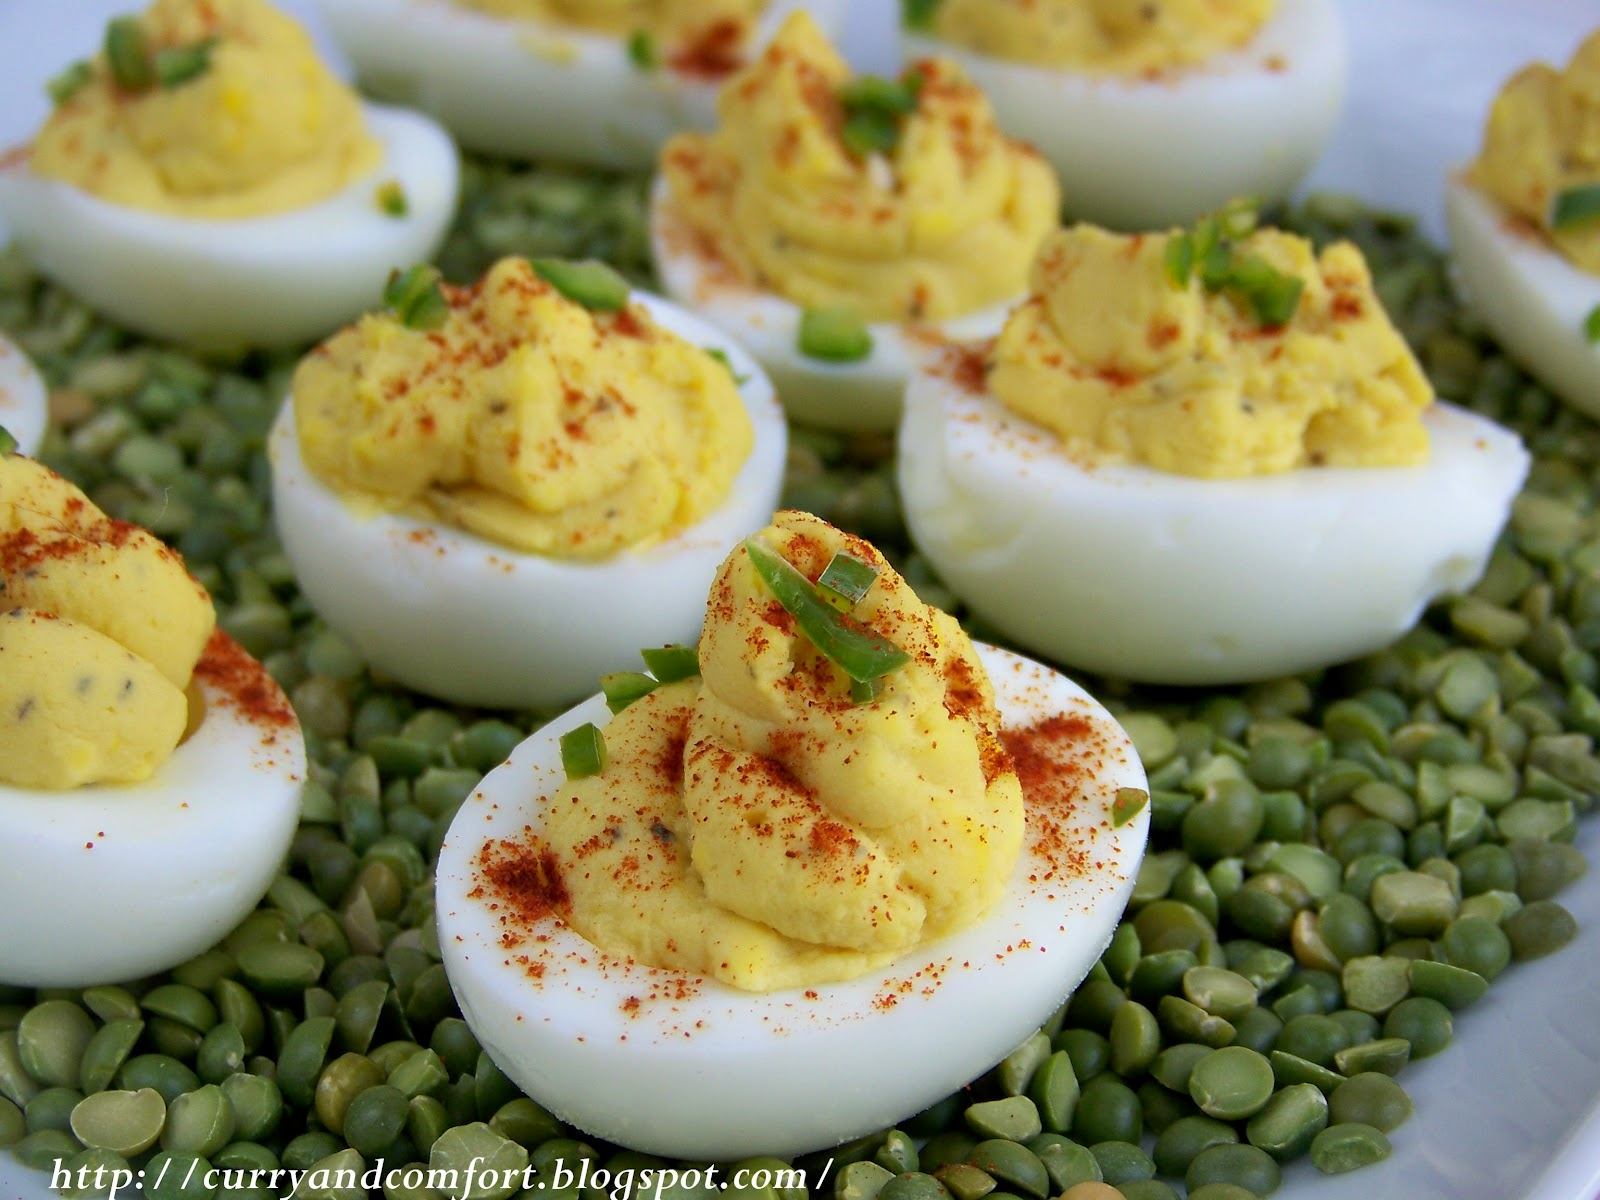 Kitchen Simmer: Egg-cellent Honey Dijon Mustard Deviled Eggs